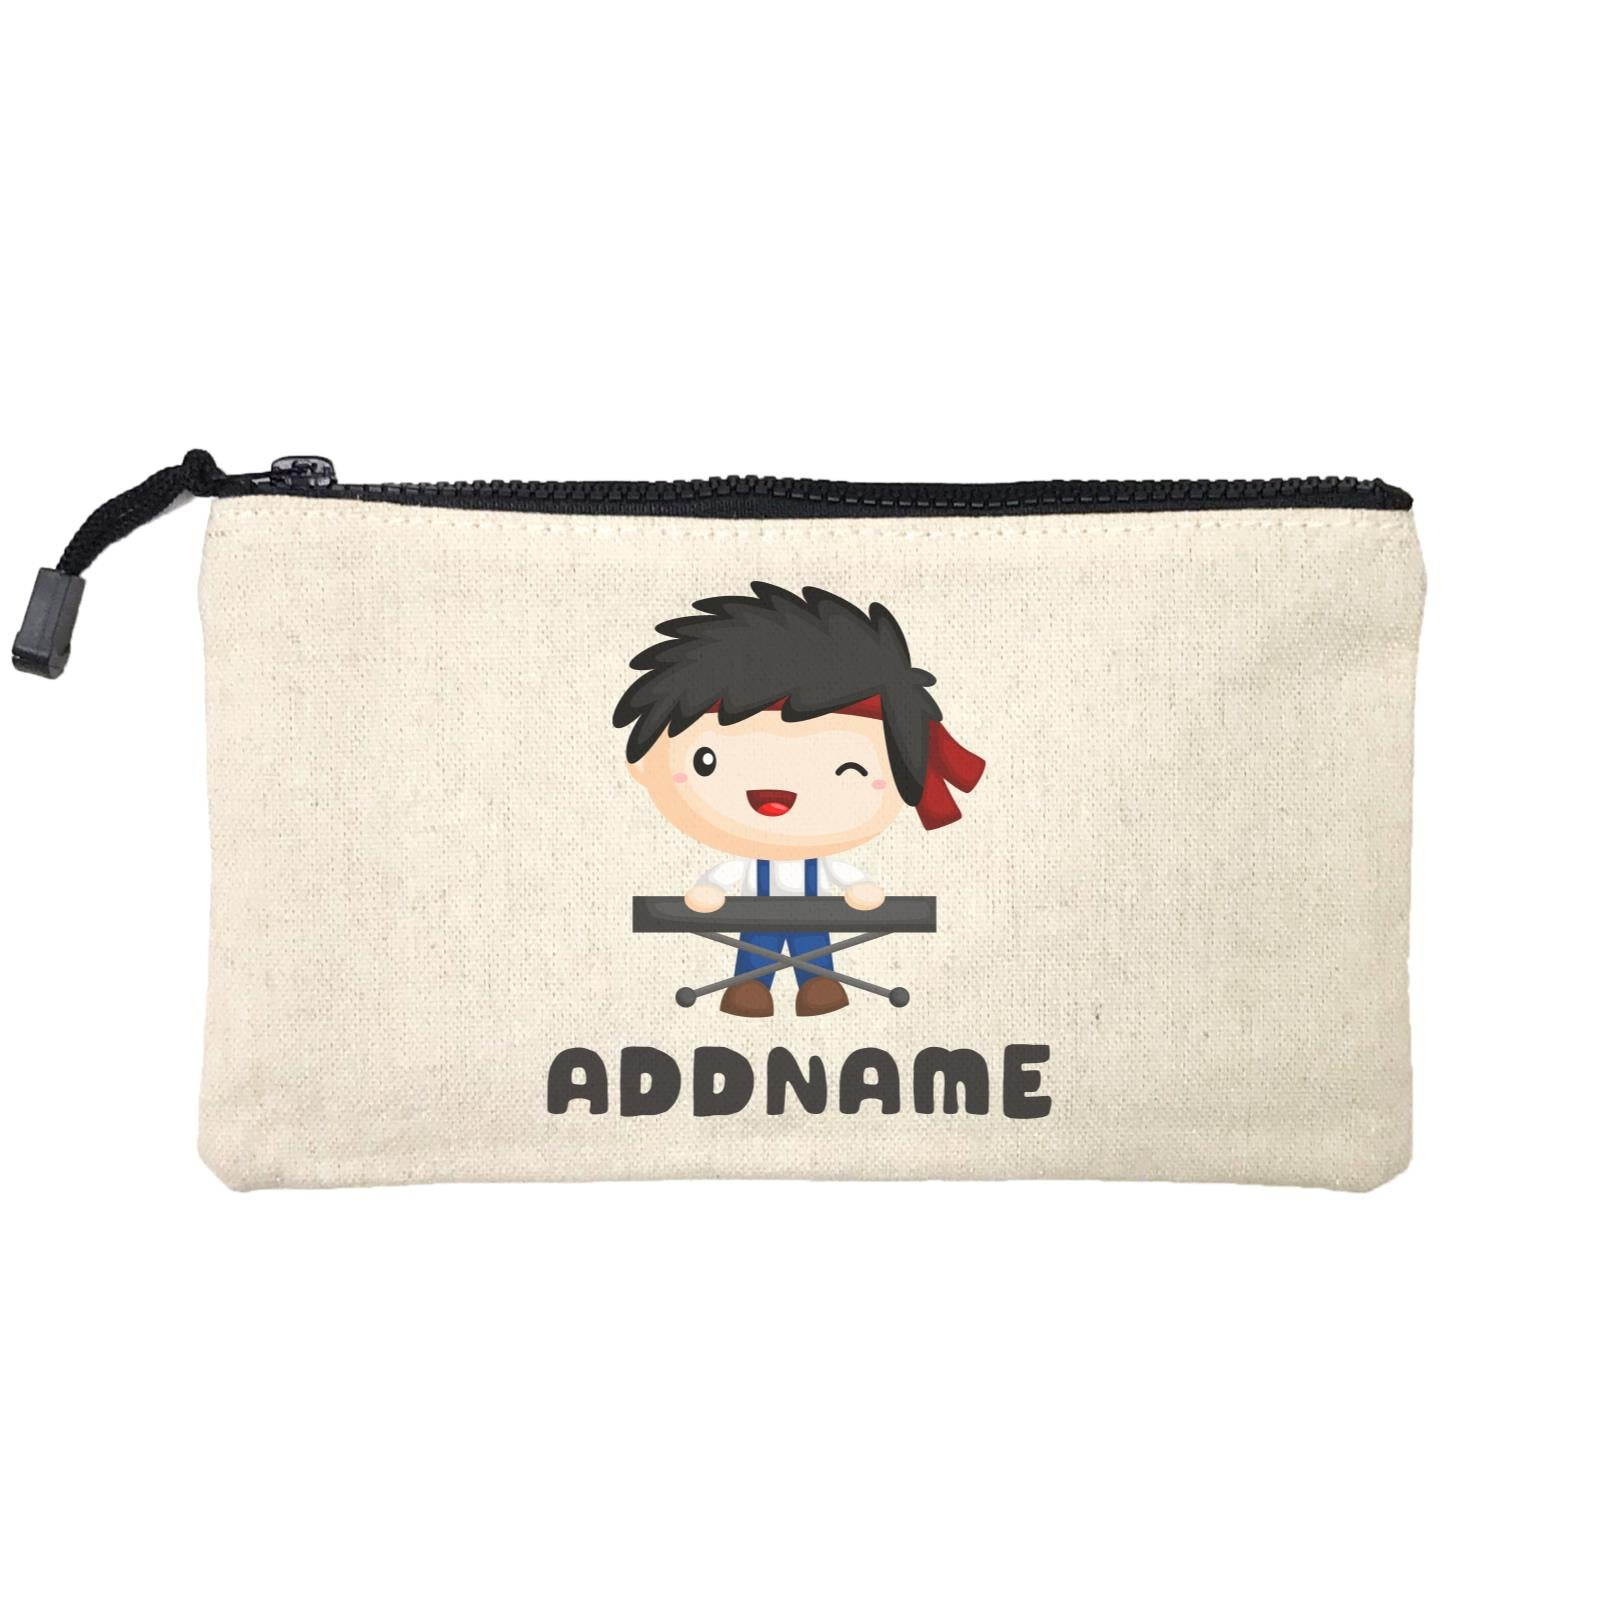 Birthday Music Band Boy Playing Electric Piano Addname Mini Accessories Stationery Pouch